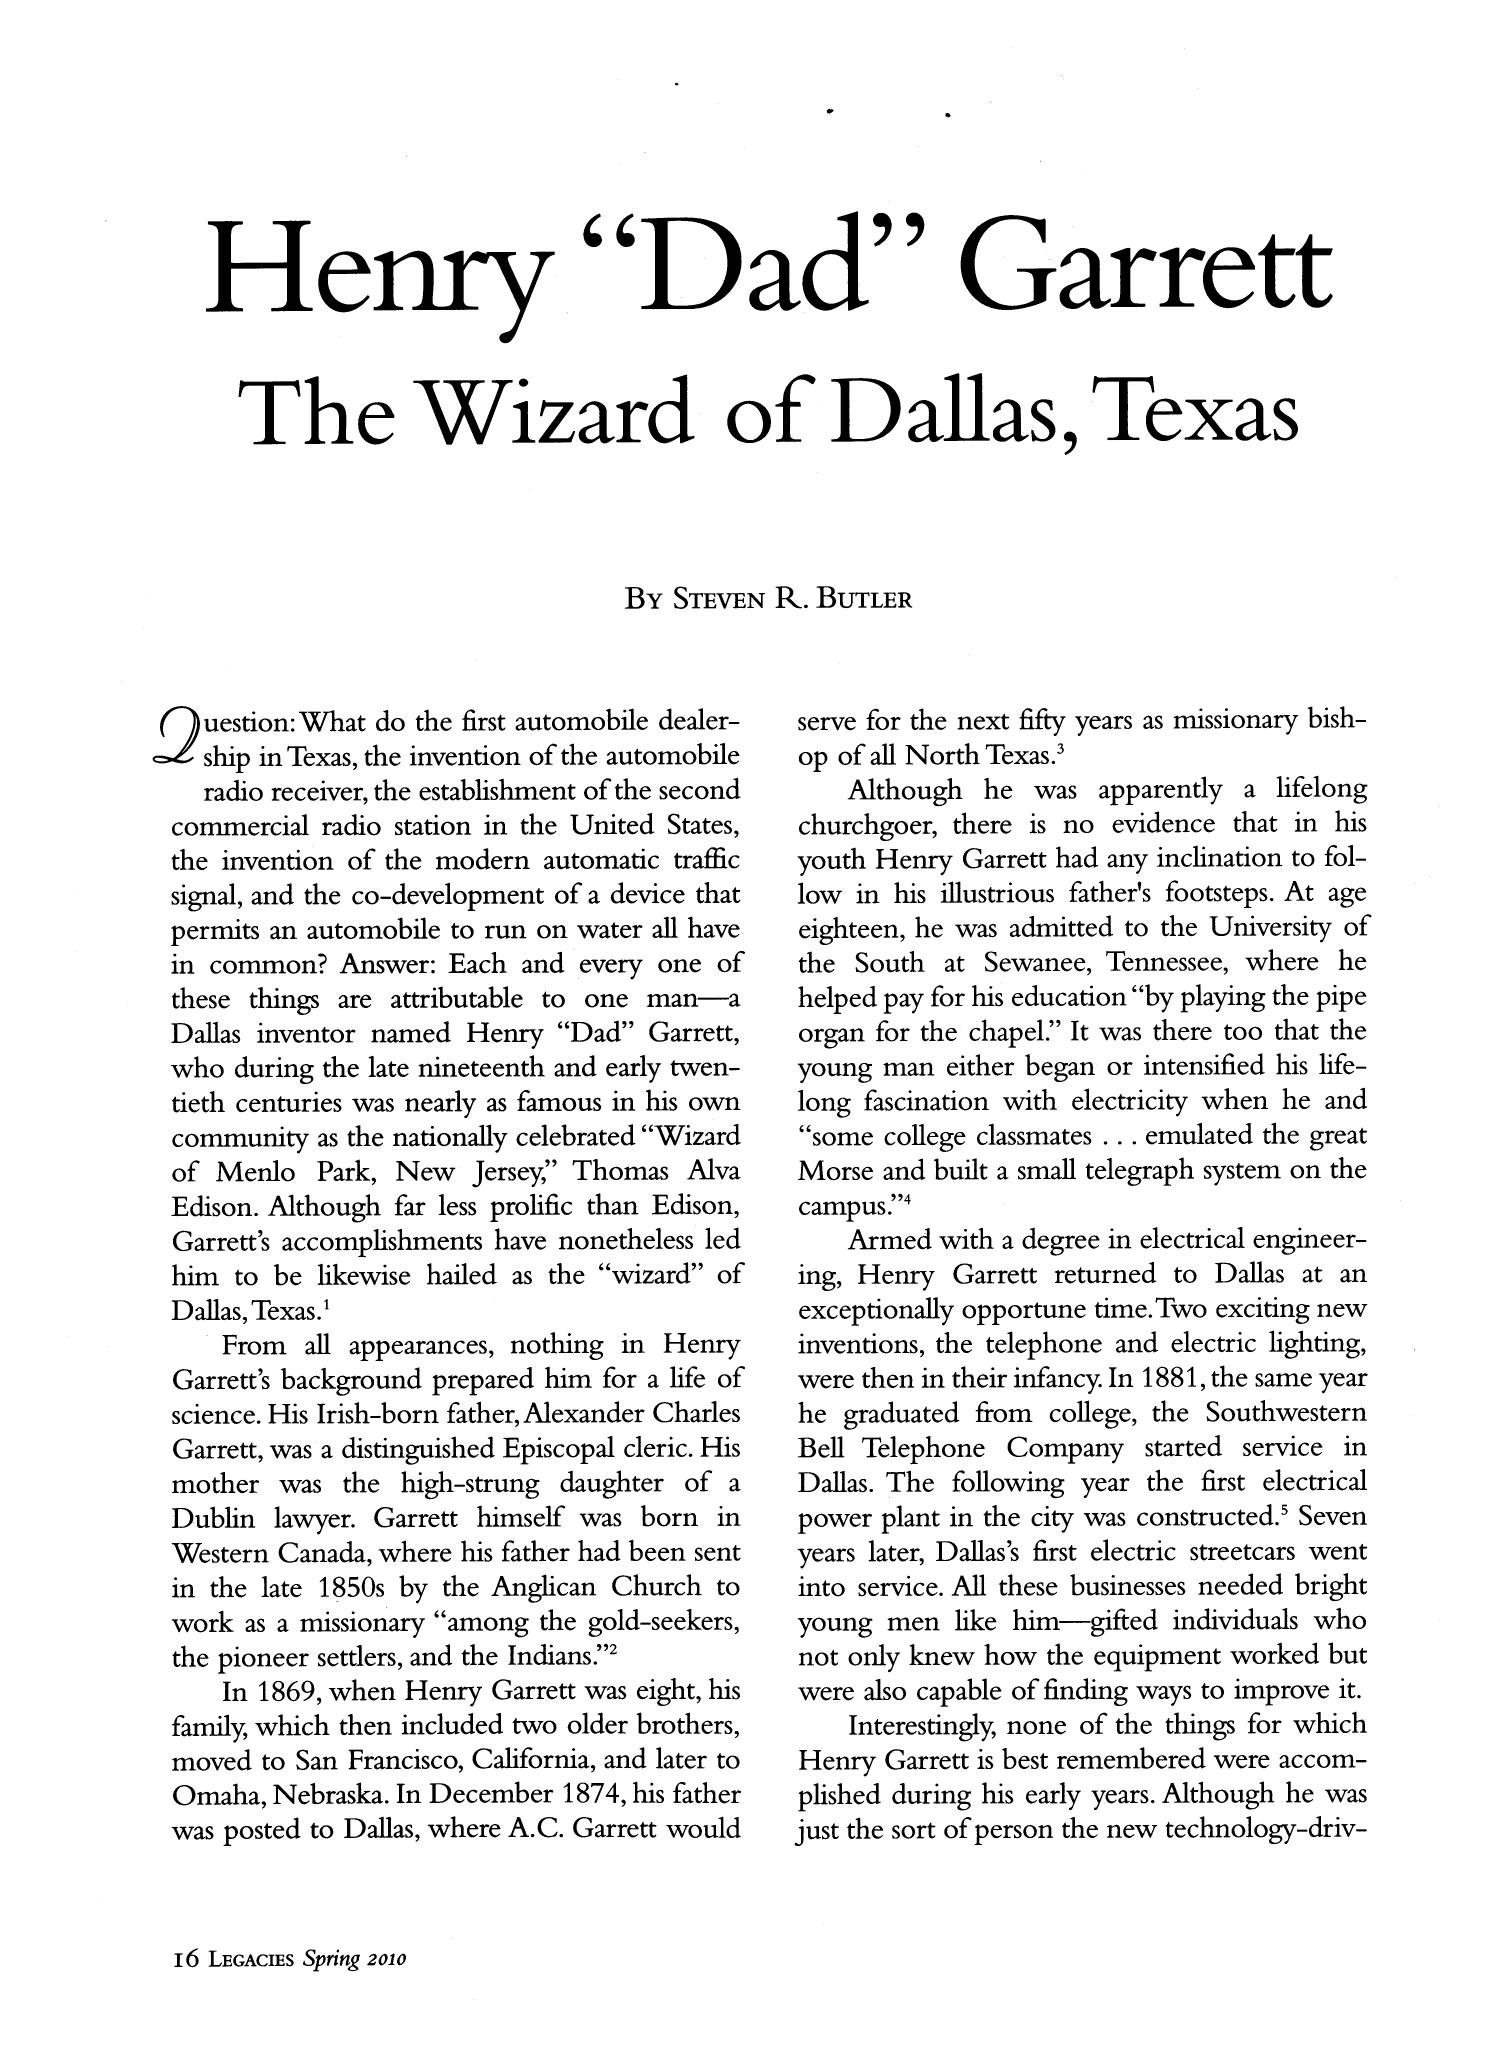 Legacies: A History Journal for Dallas and North Central Texas, Volume 22, Number 01, Spring 2010                                                                                                      16